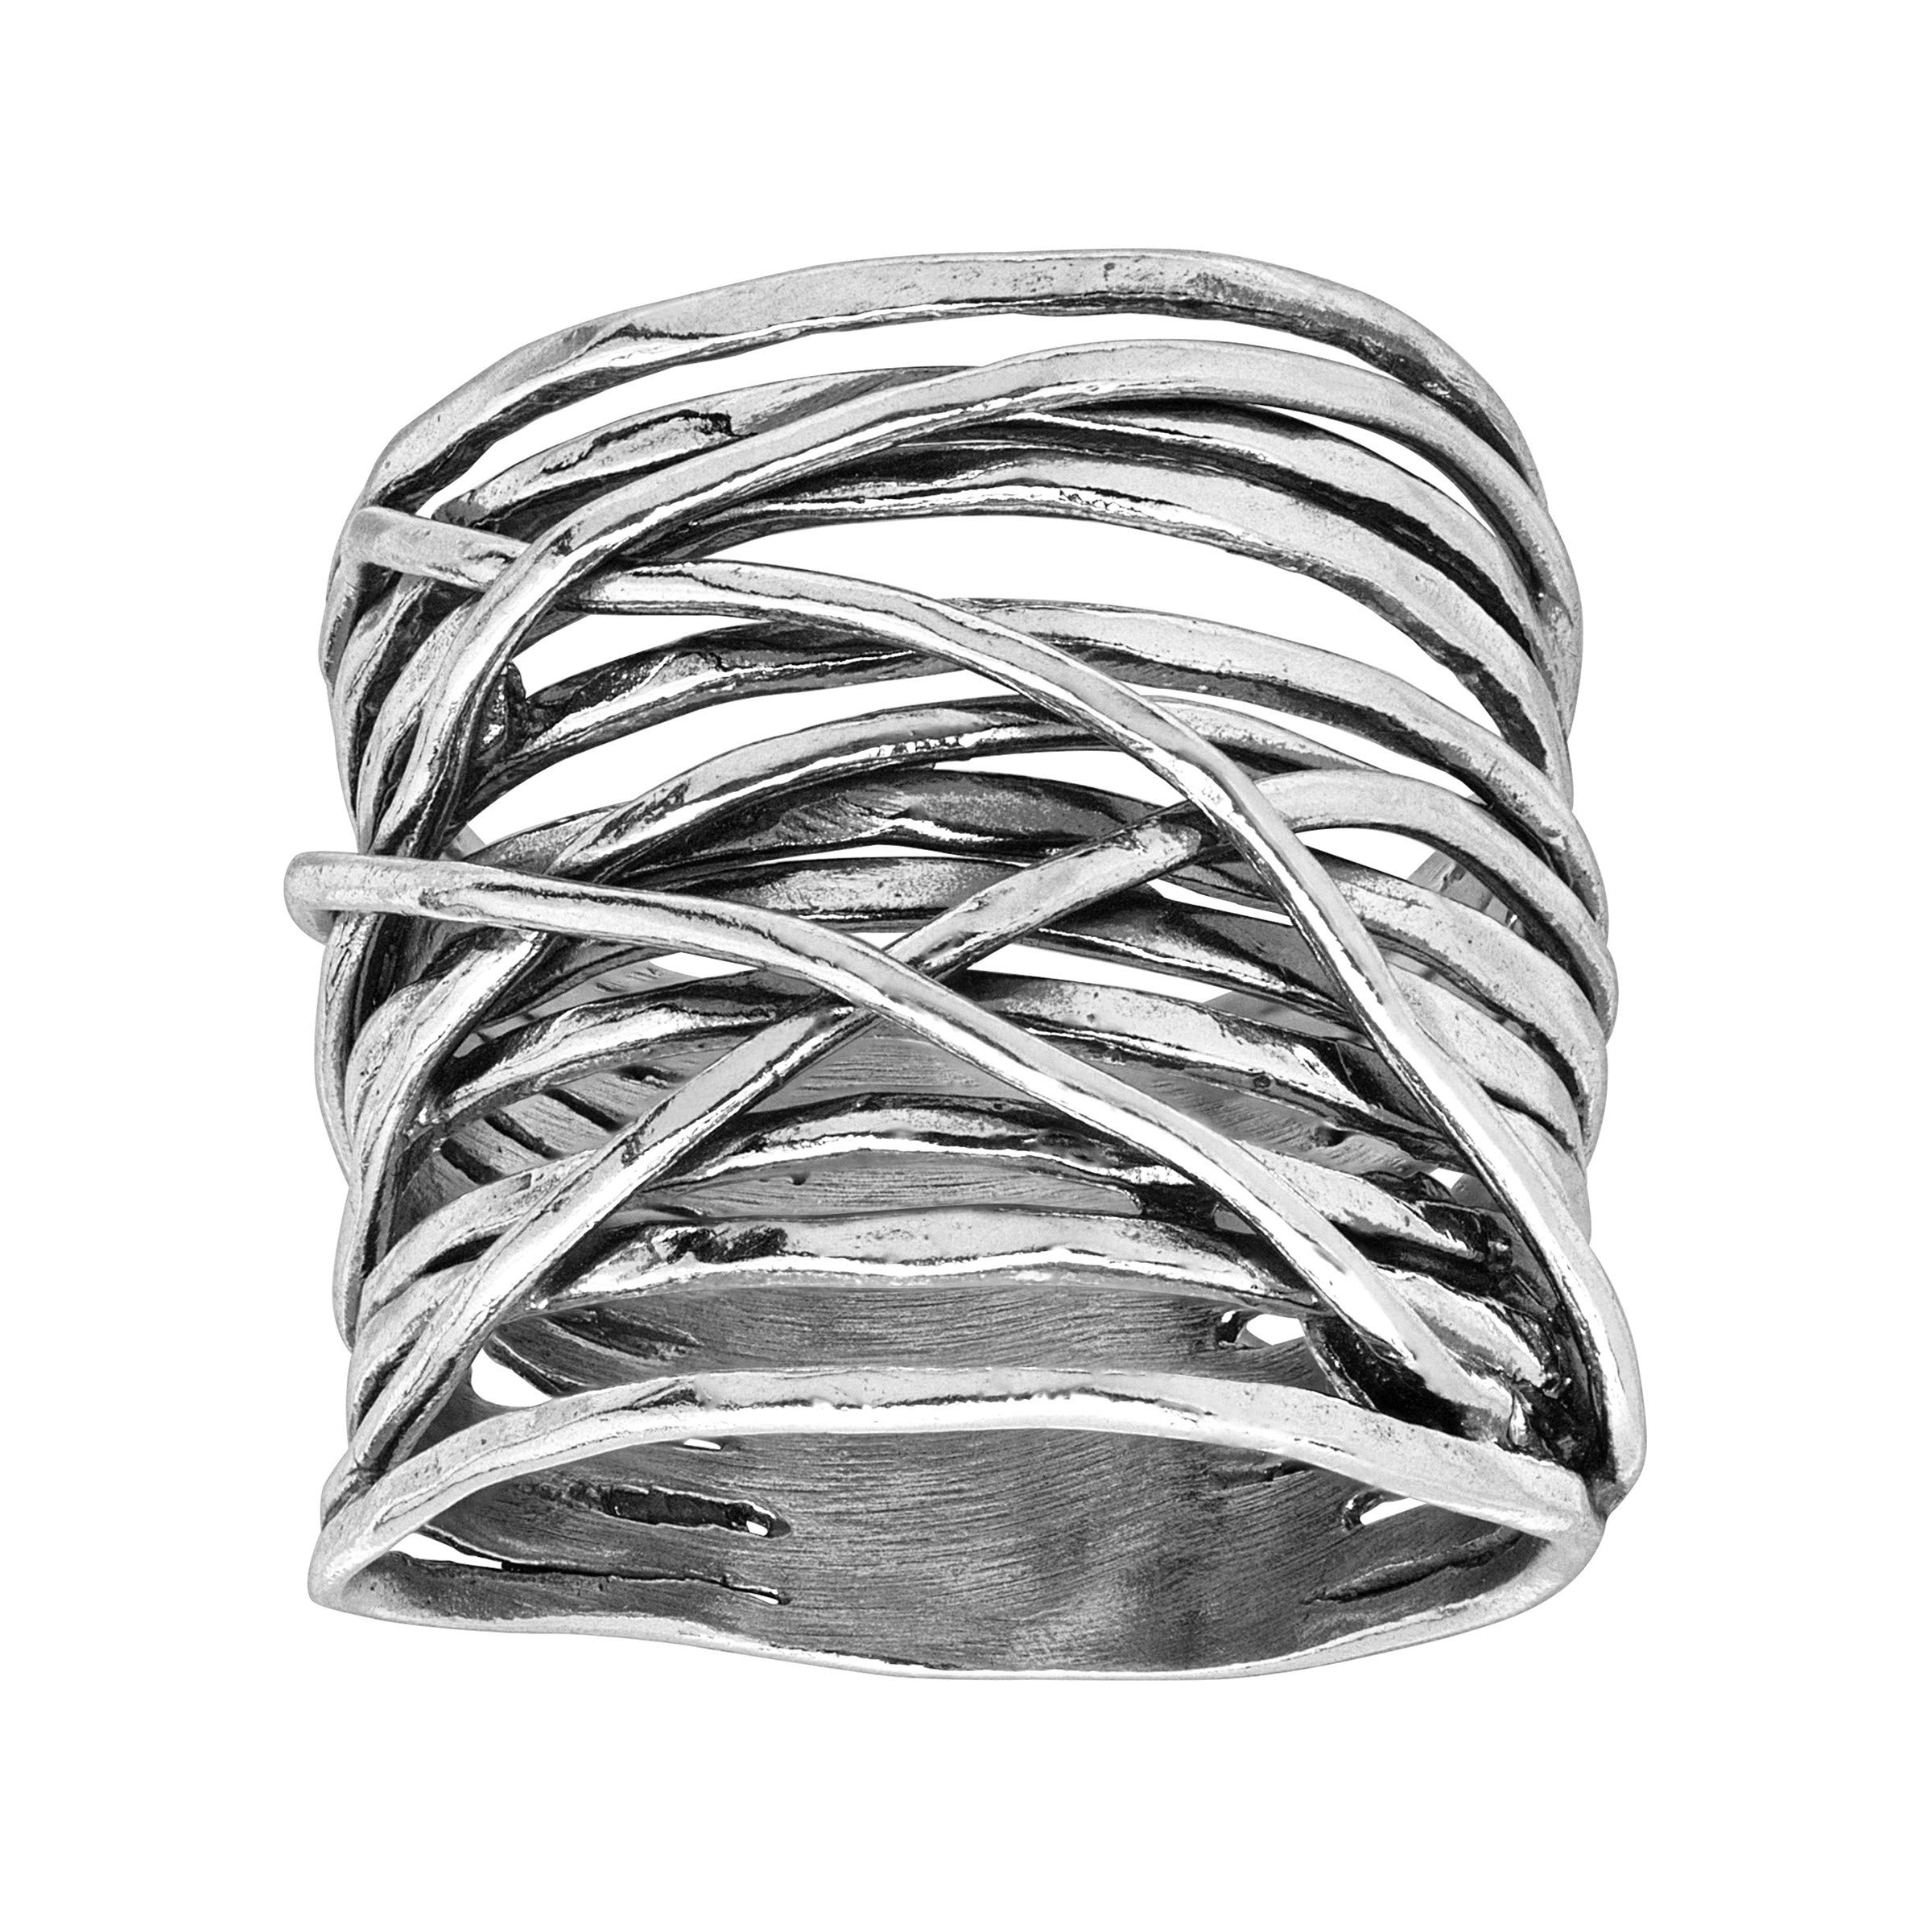 Silpada 'Sundried' Criss-Crossed Textured Sterling Silver Ring